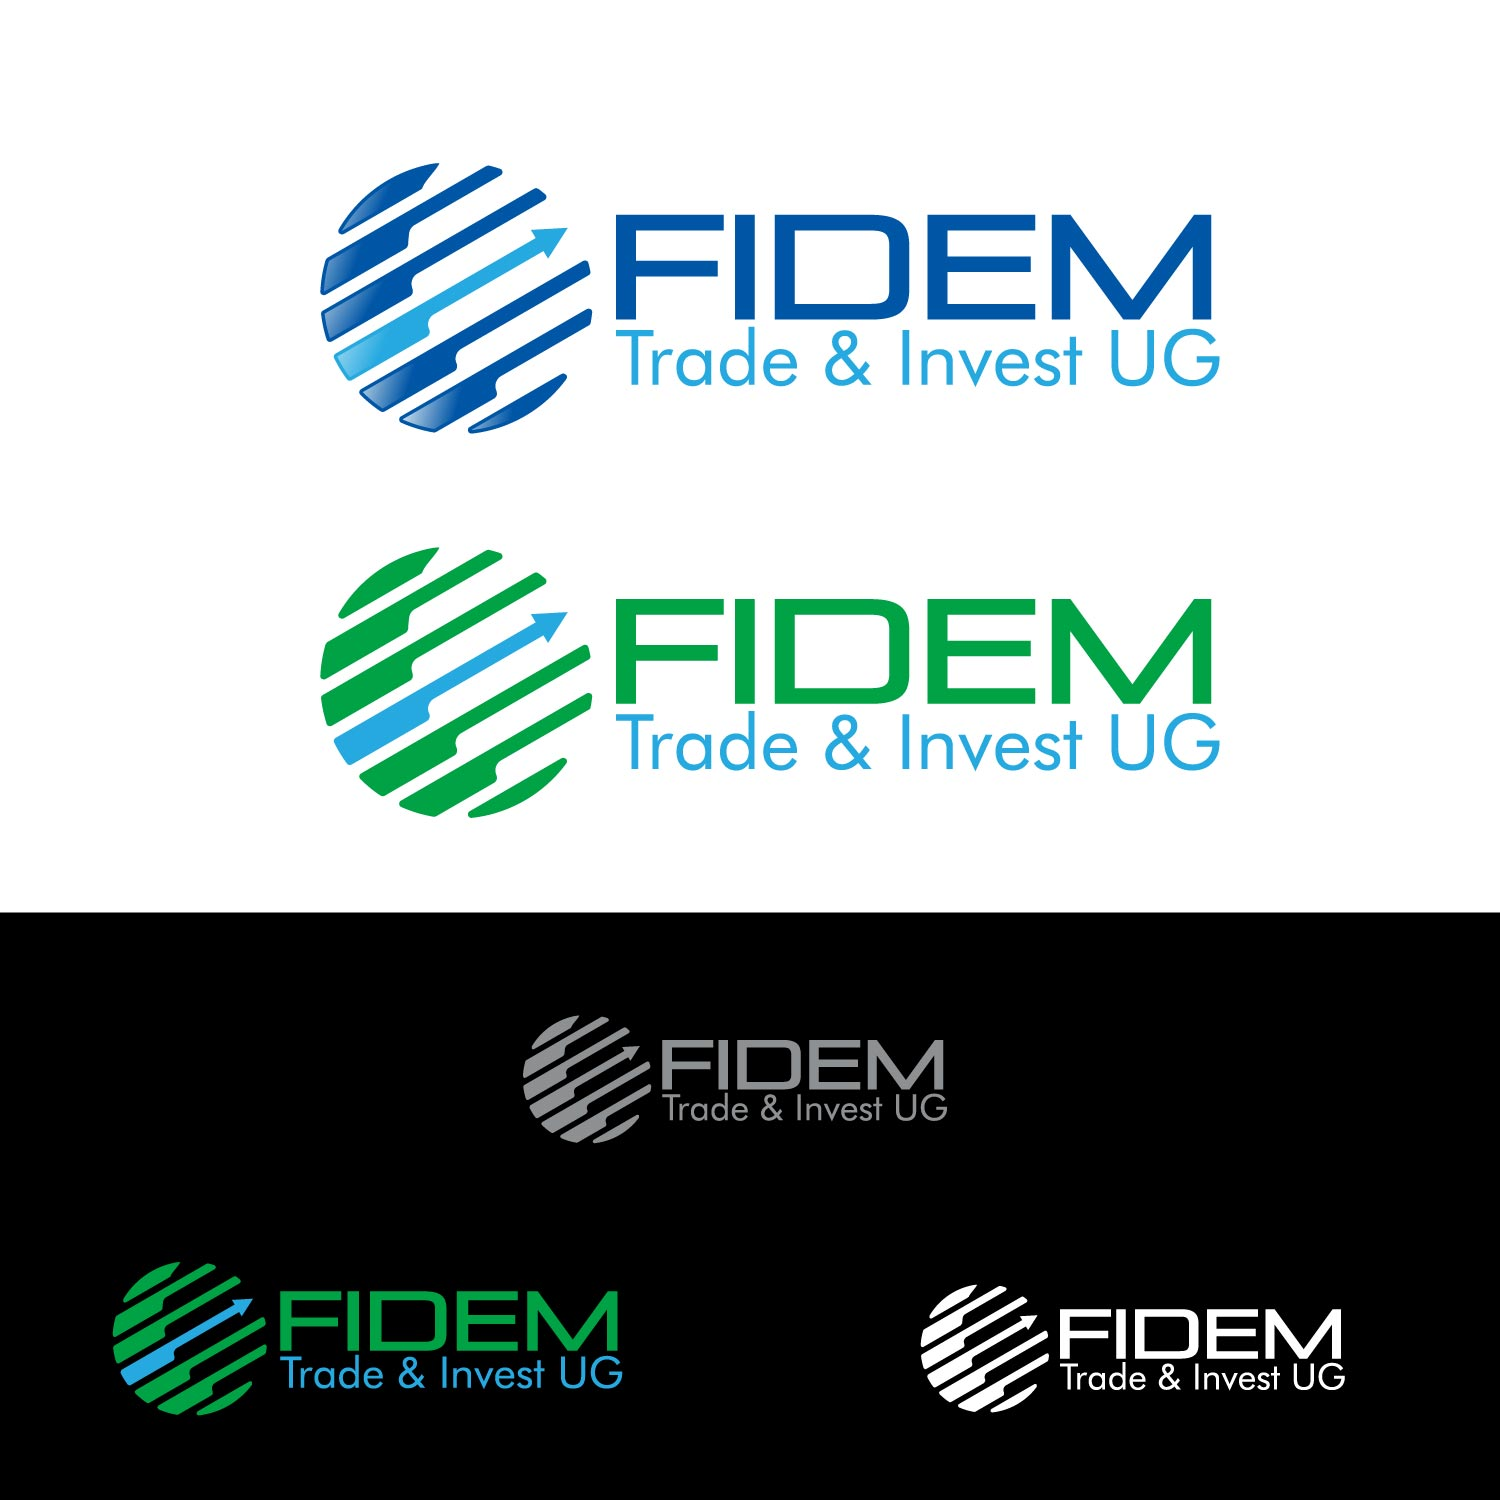 Logo Design by lagalag - Entry No. 276 in the Logo Design Contest Professional Logo Design for FIDEM Trade & Invest UG.